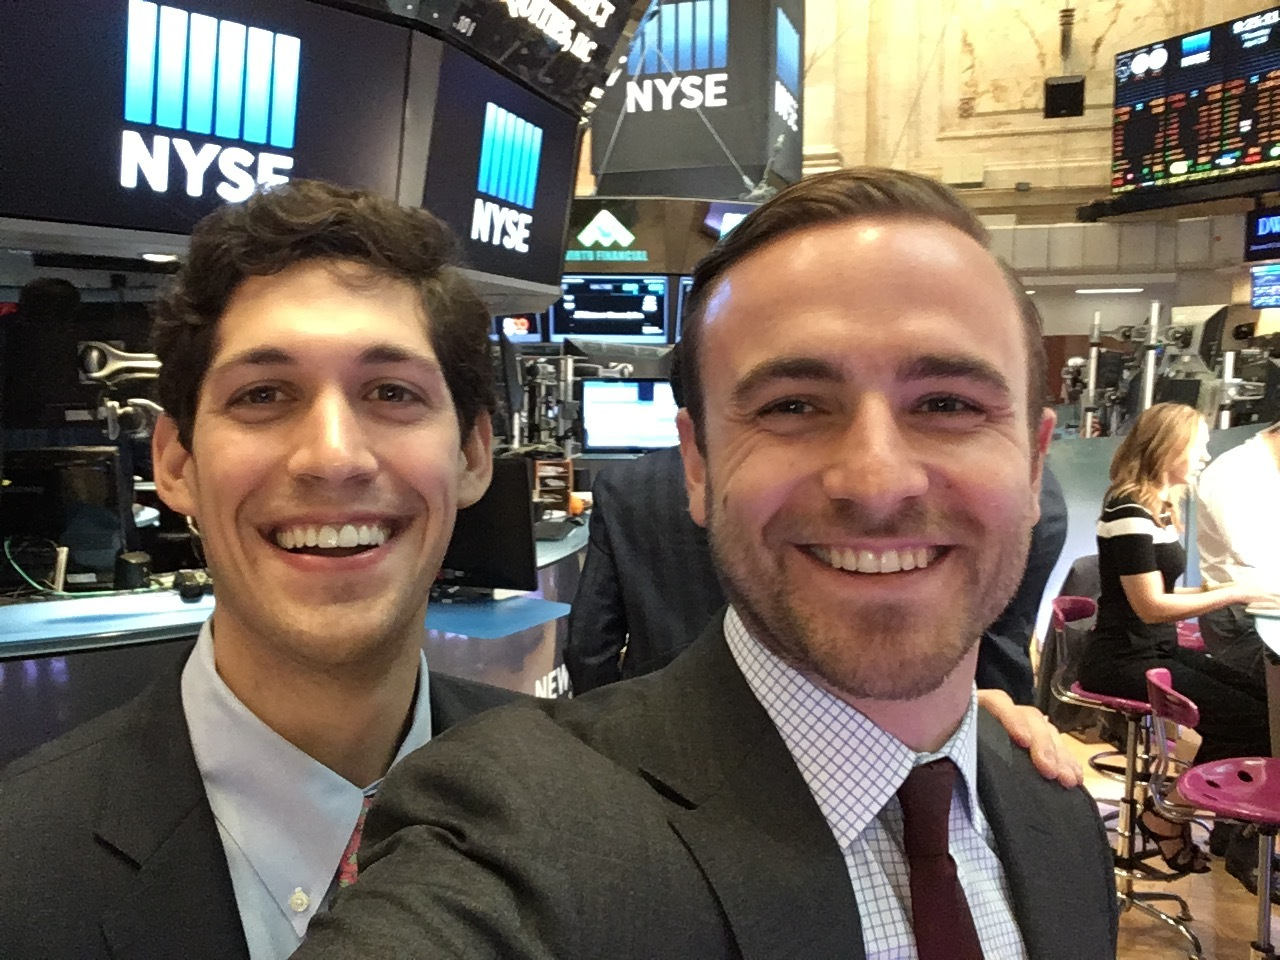 Me and my co-founder getting hyped for a TV spot on the NYSE